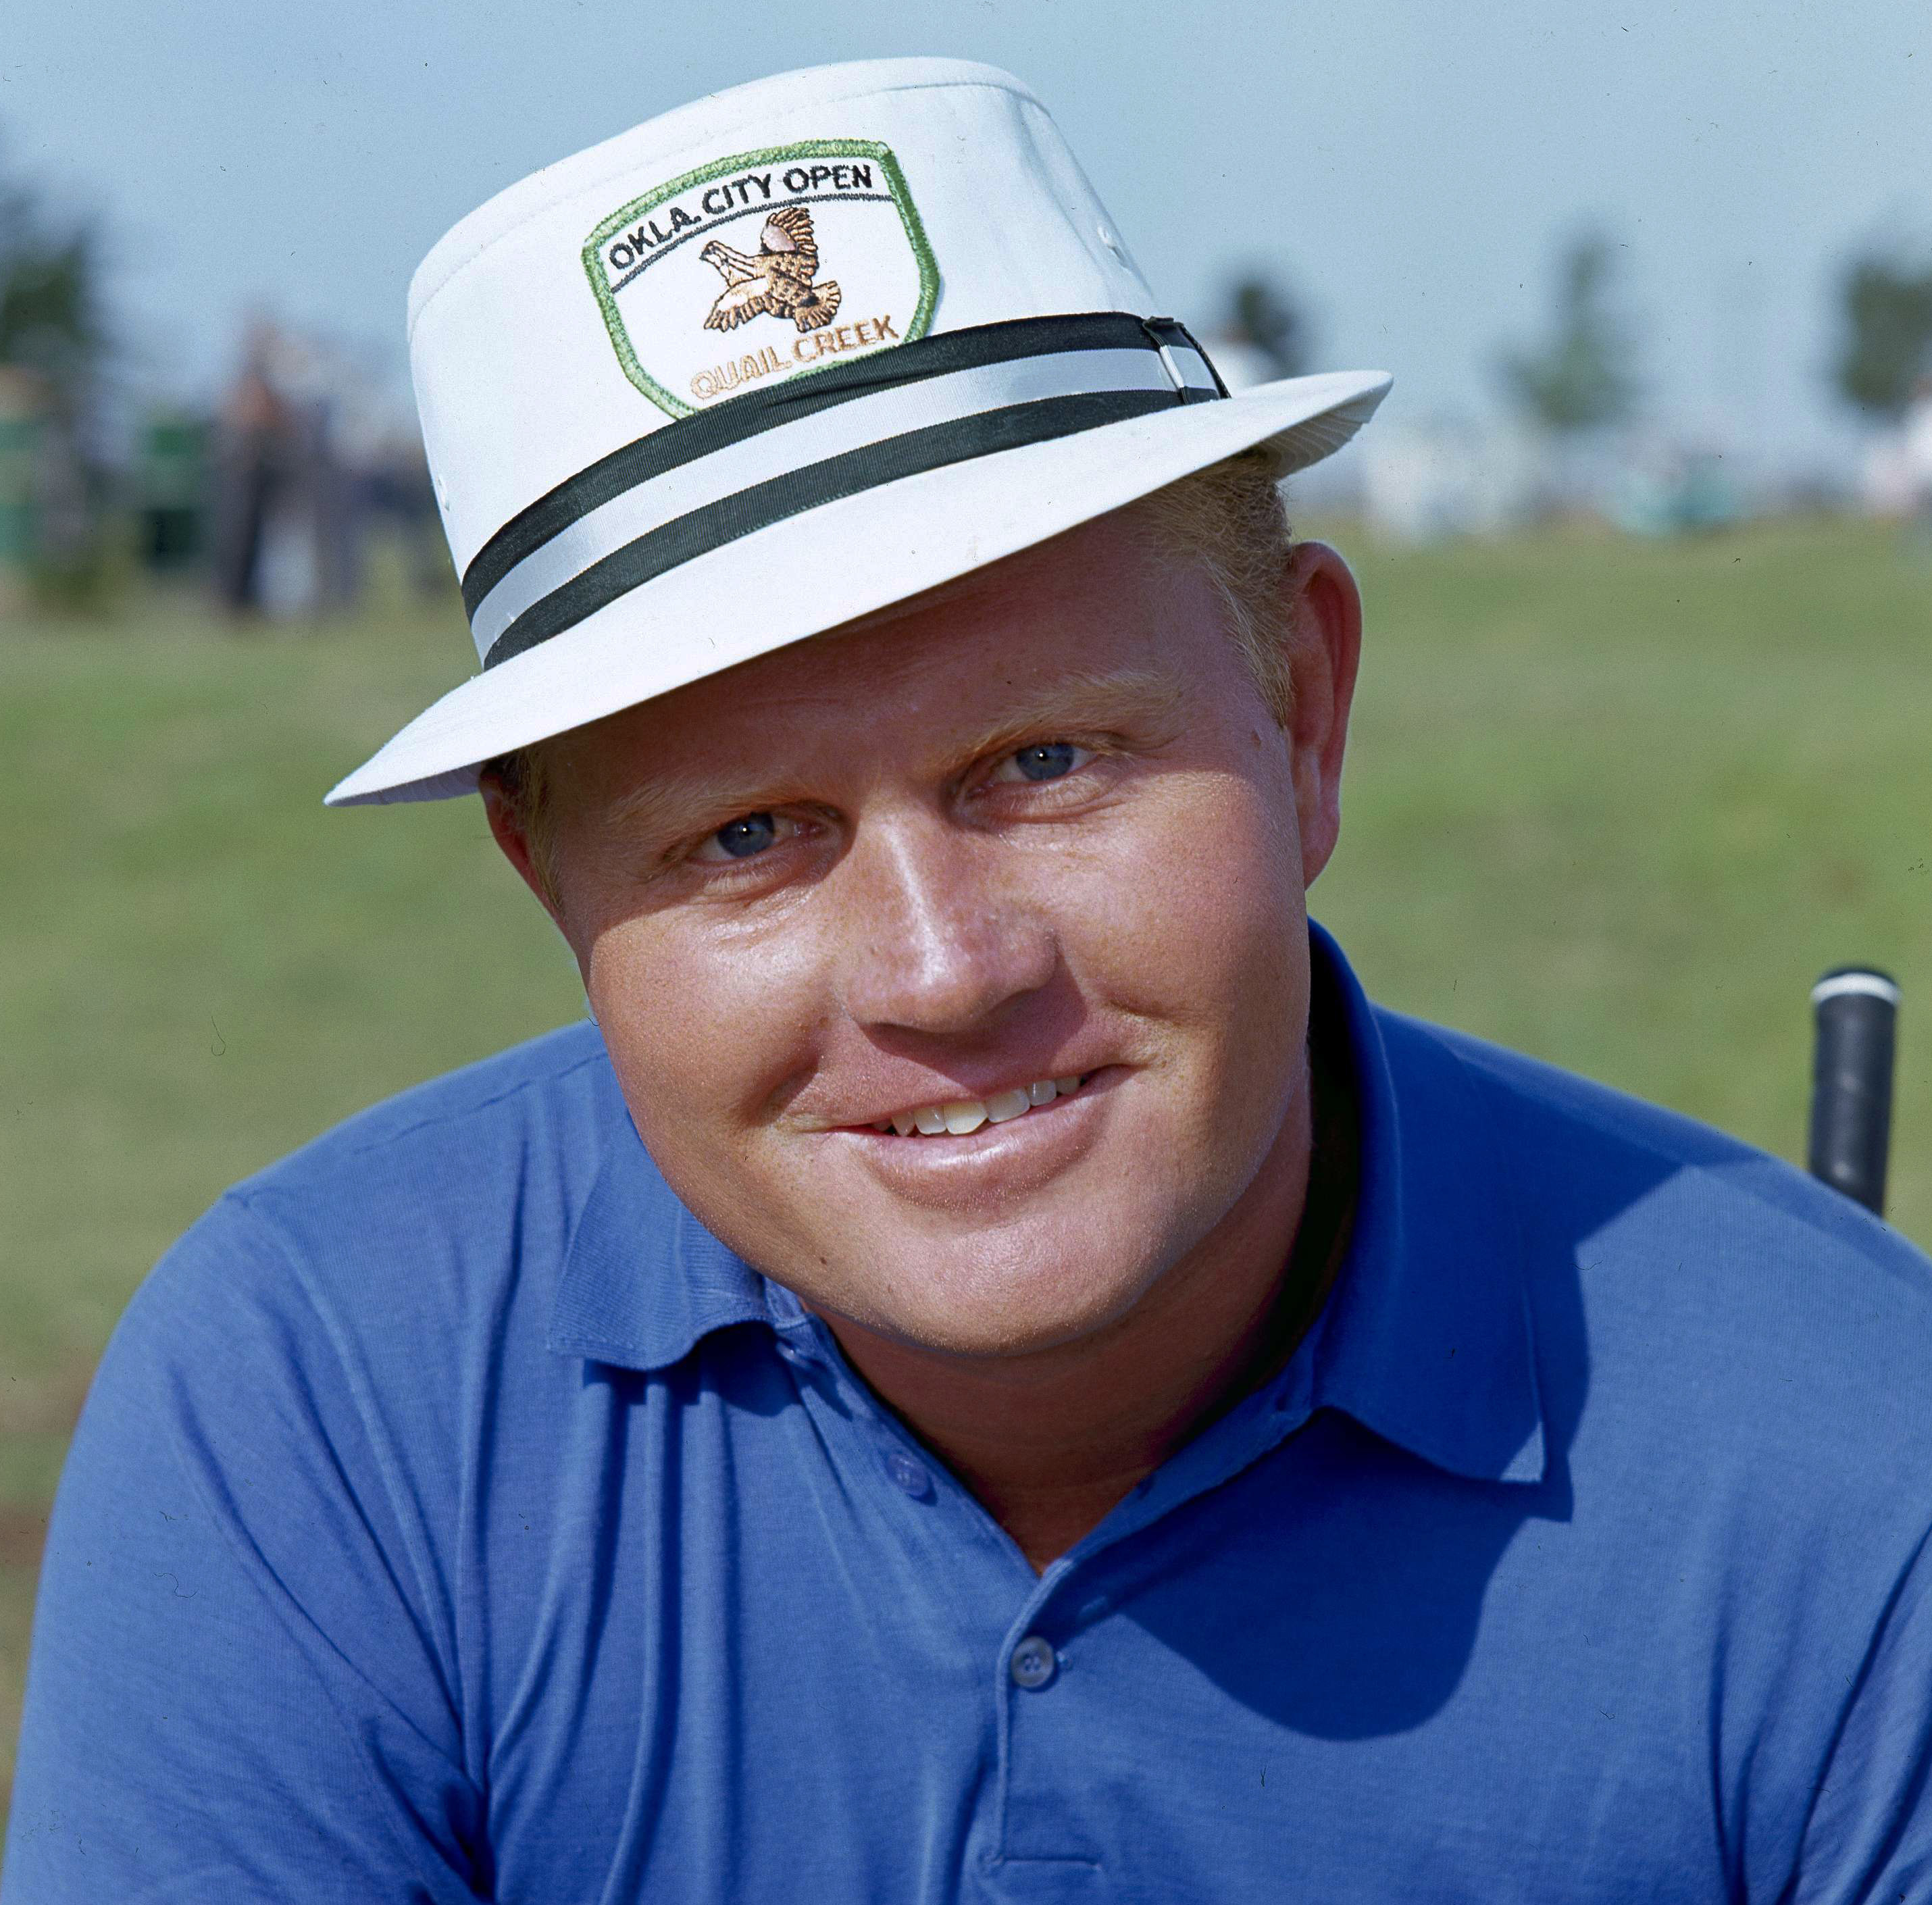 Jack Nicklaus in 1966.